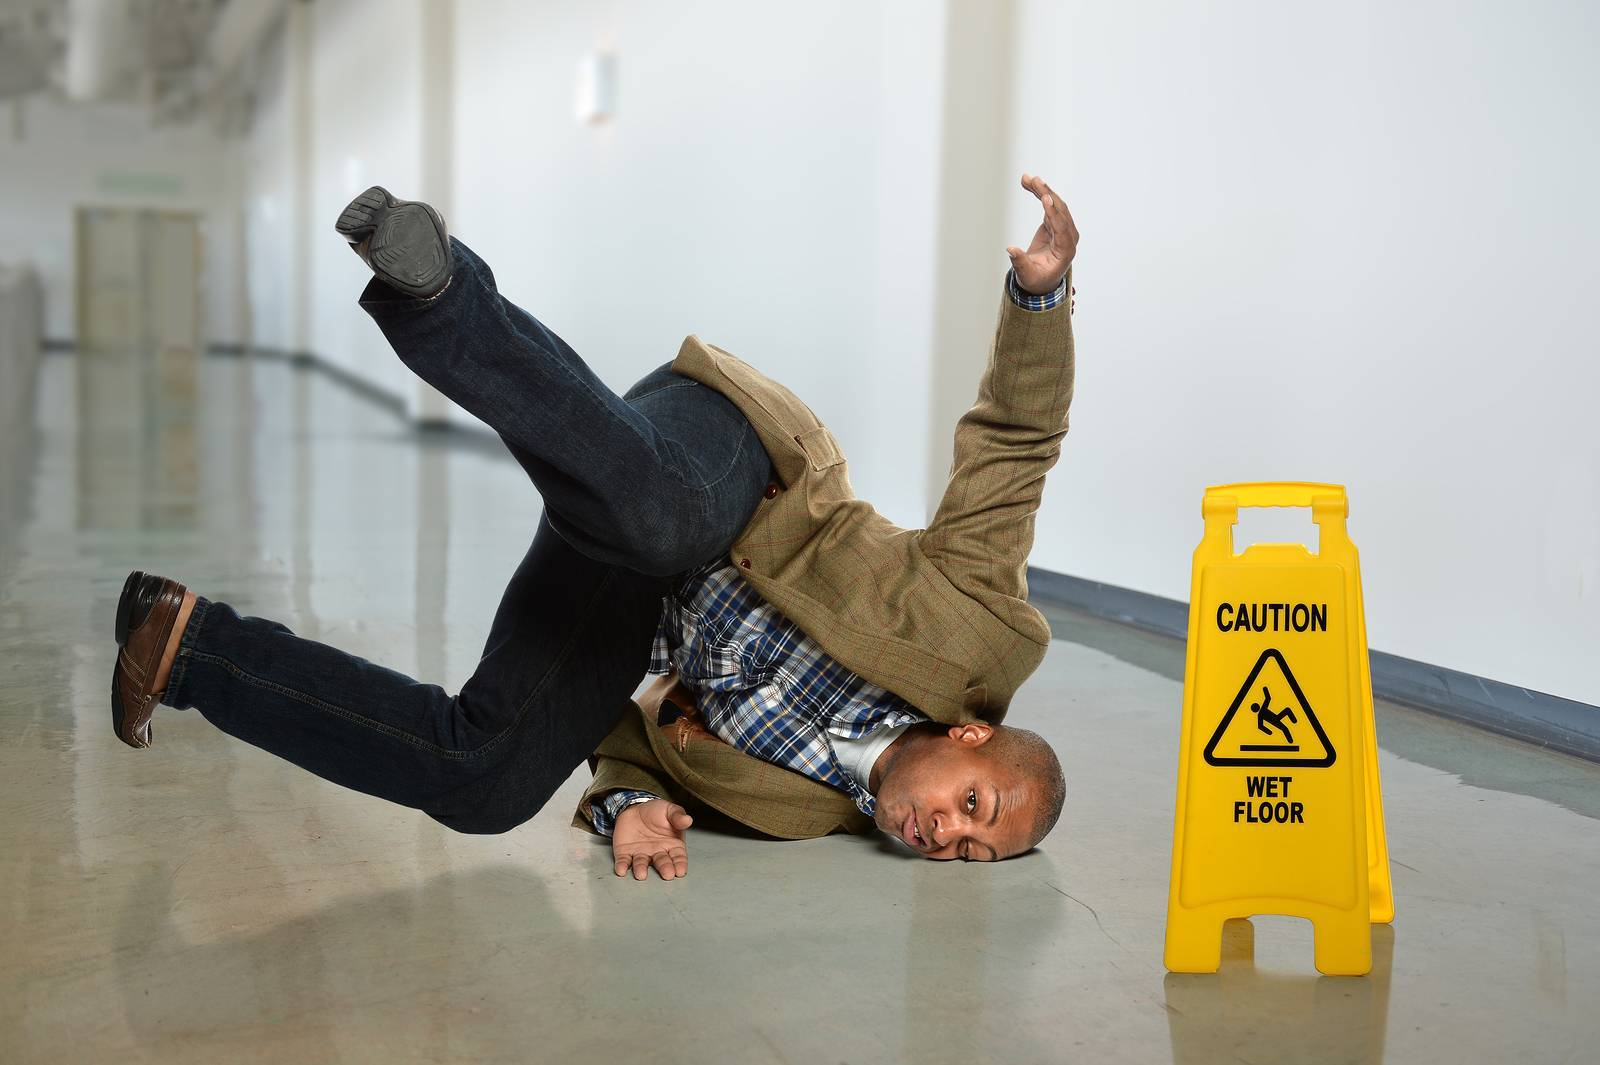 HOW TO PREVENT FALLS IN THE WORKPLACE – 6 HELPFUL TIPS